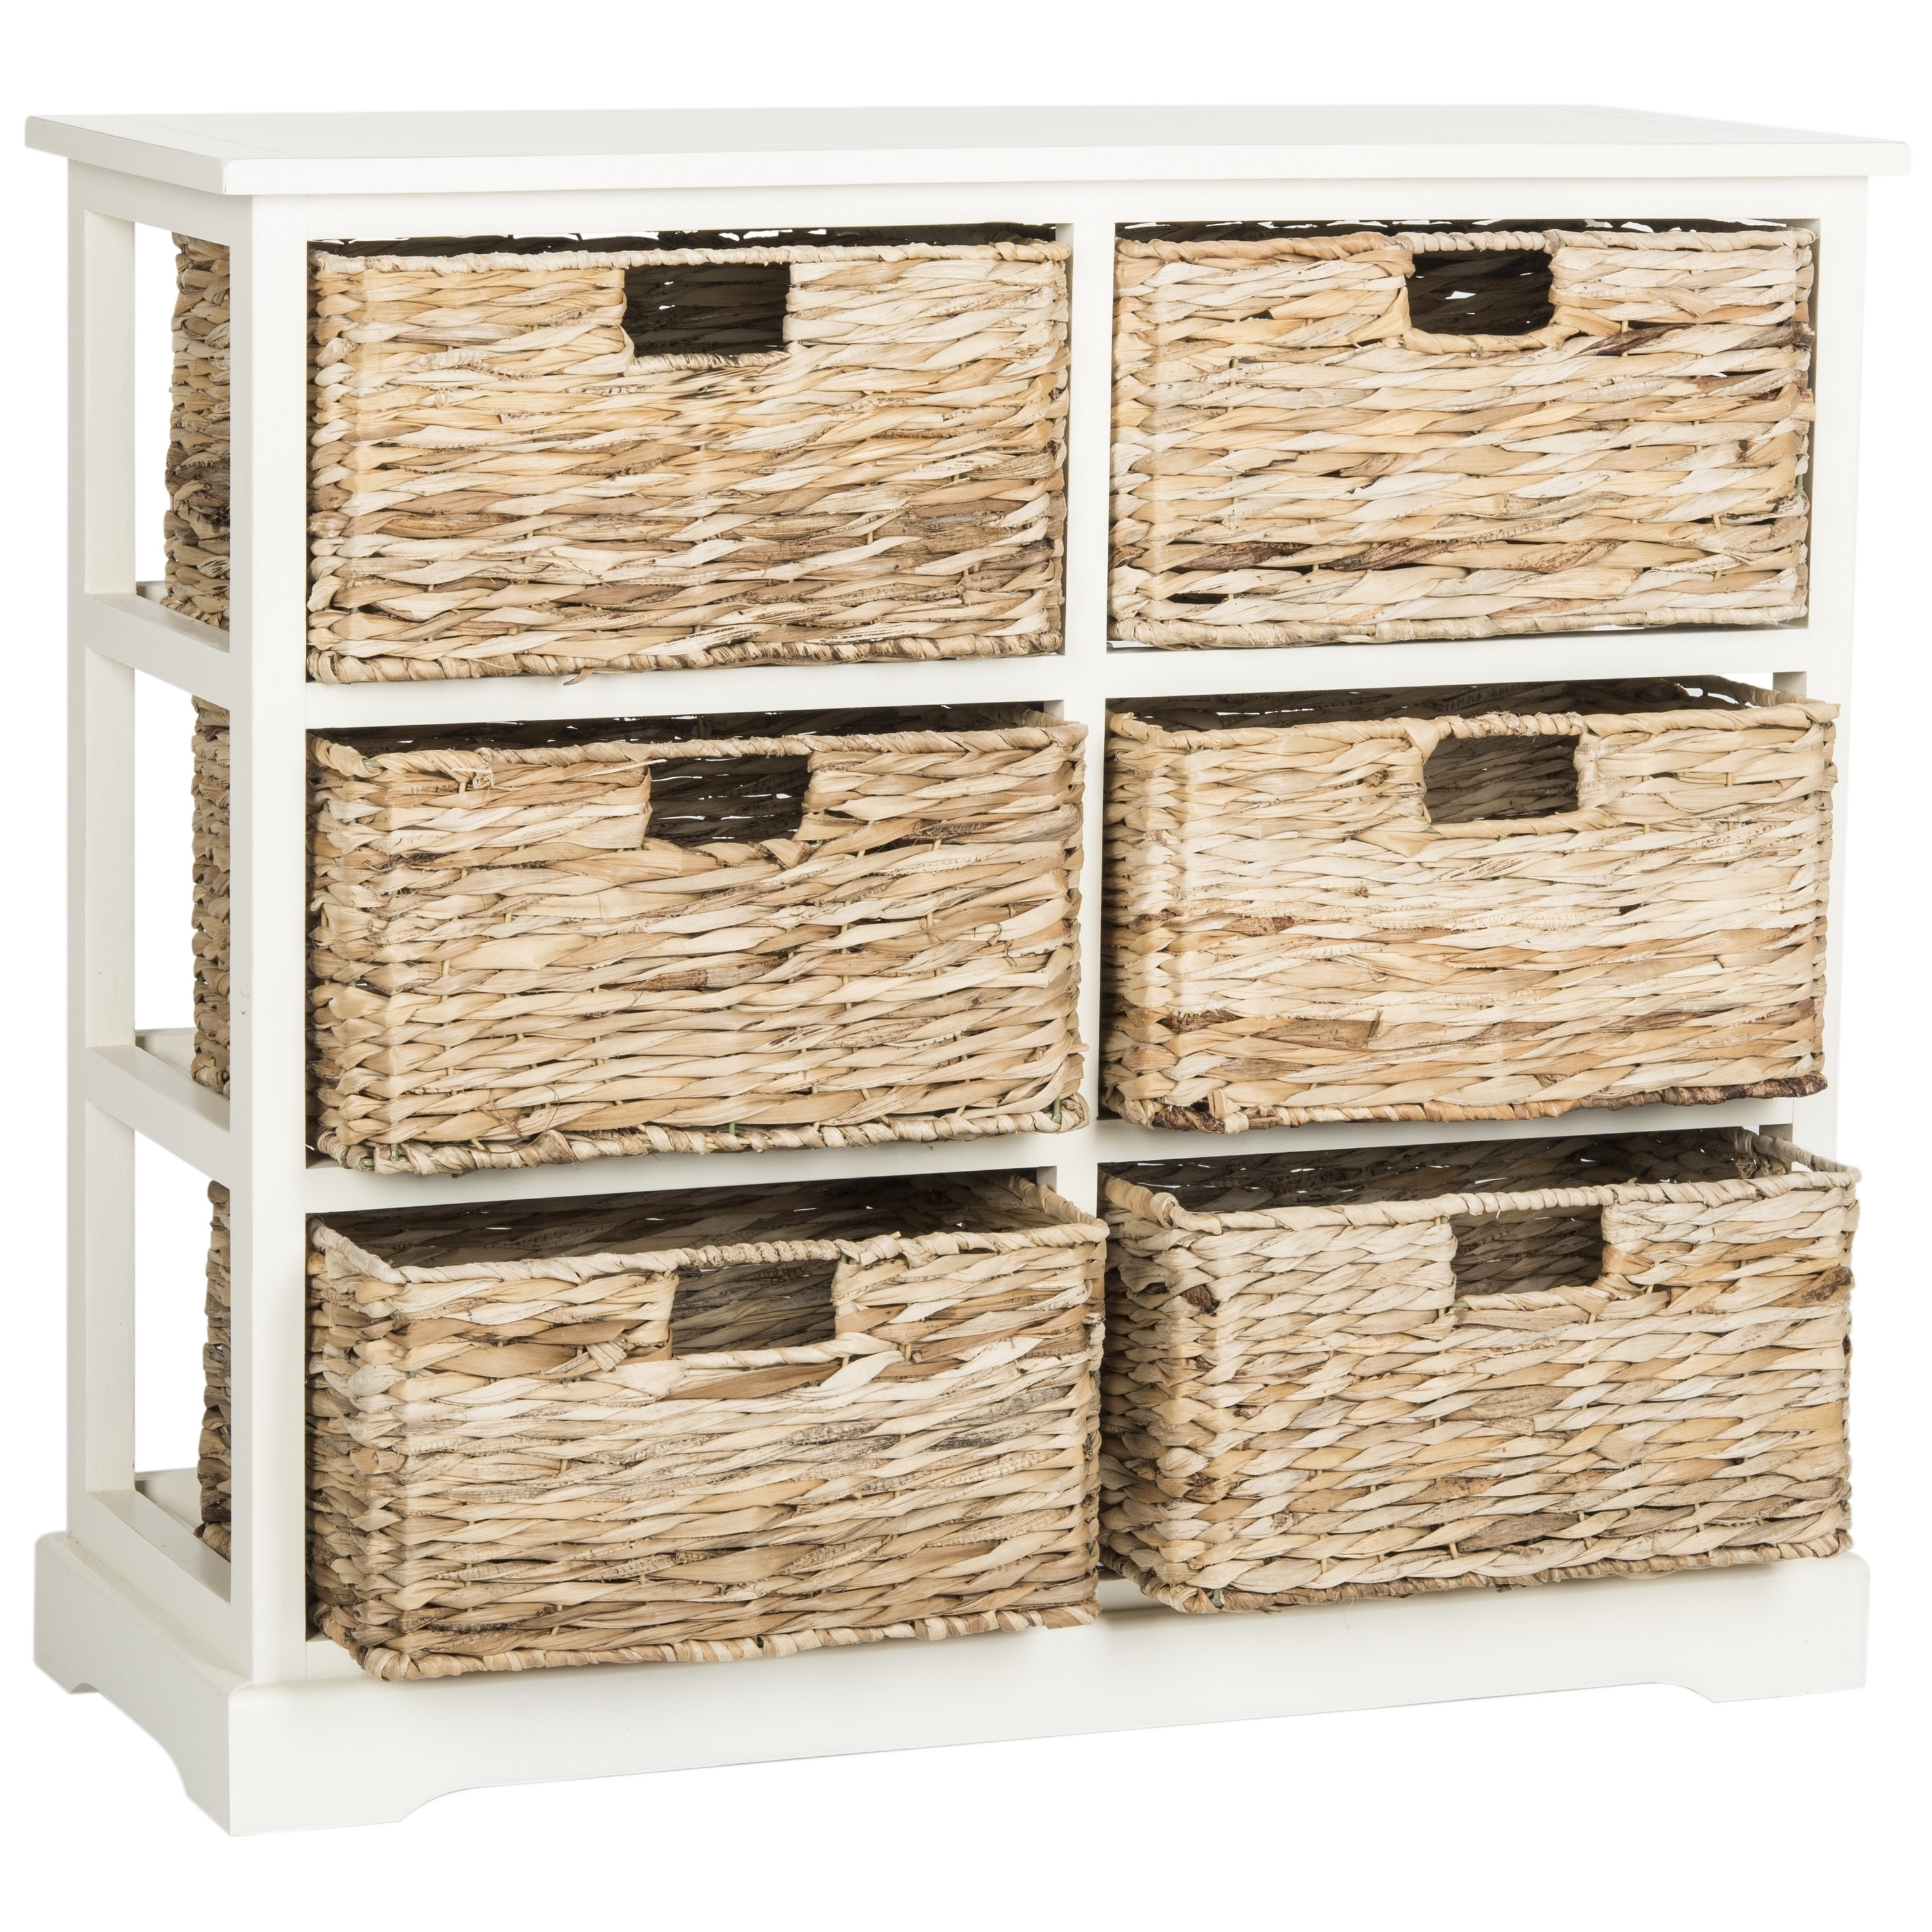 Safavieh Keenan Distressed White 6 Drawer Wicker Basket Storage Chest 32 1 X 13 4 29 5 Free Shipping Today 10857176